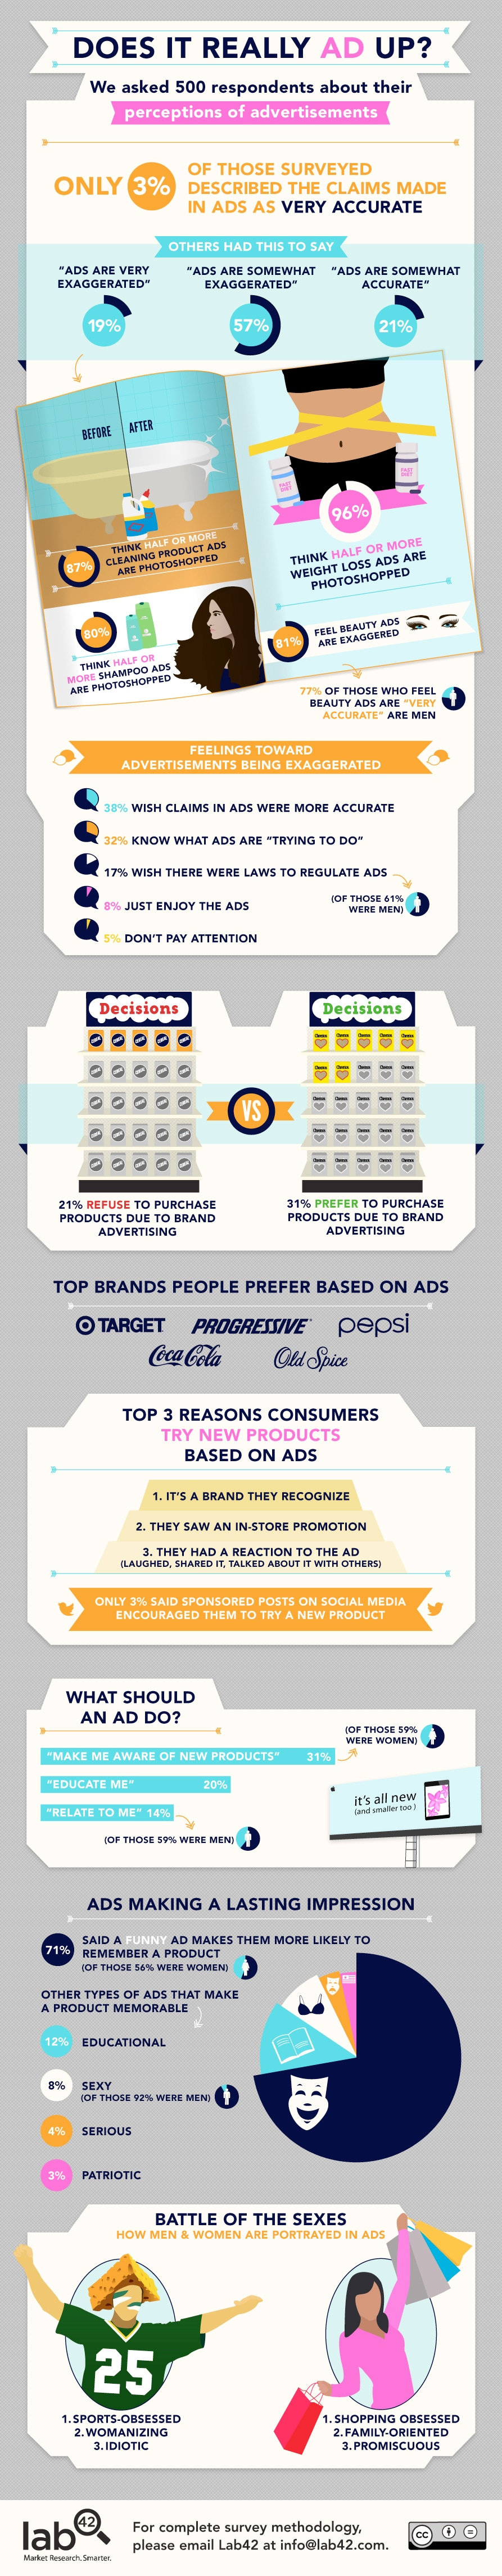 Advertising Perception: We Know When Ads Are Inaccurate [Infographic]